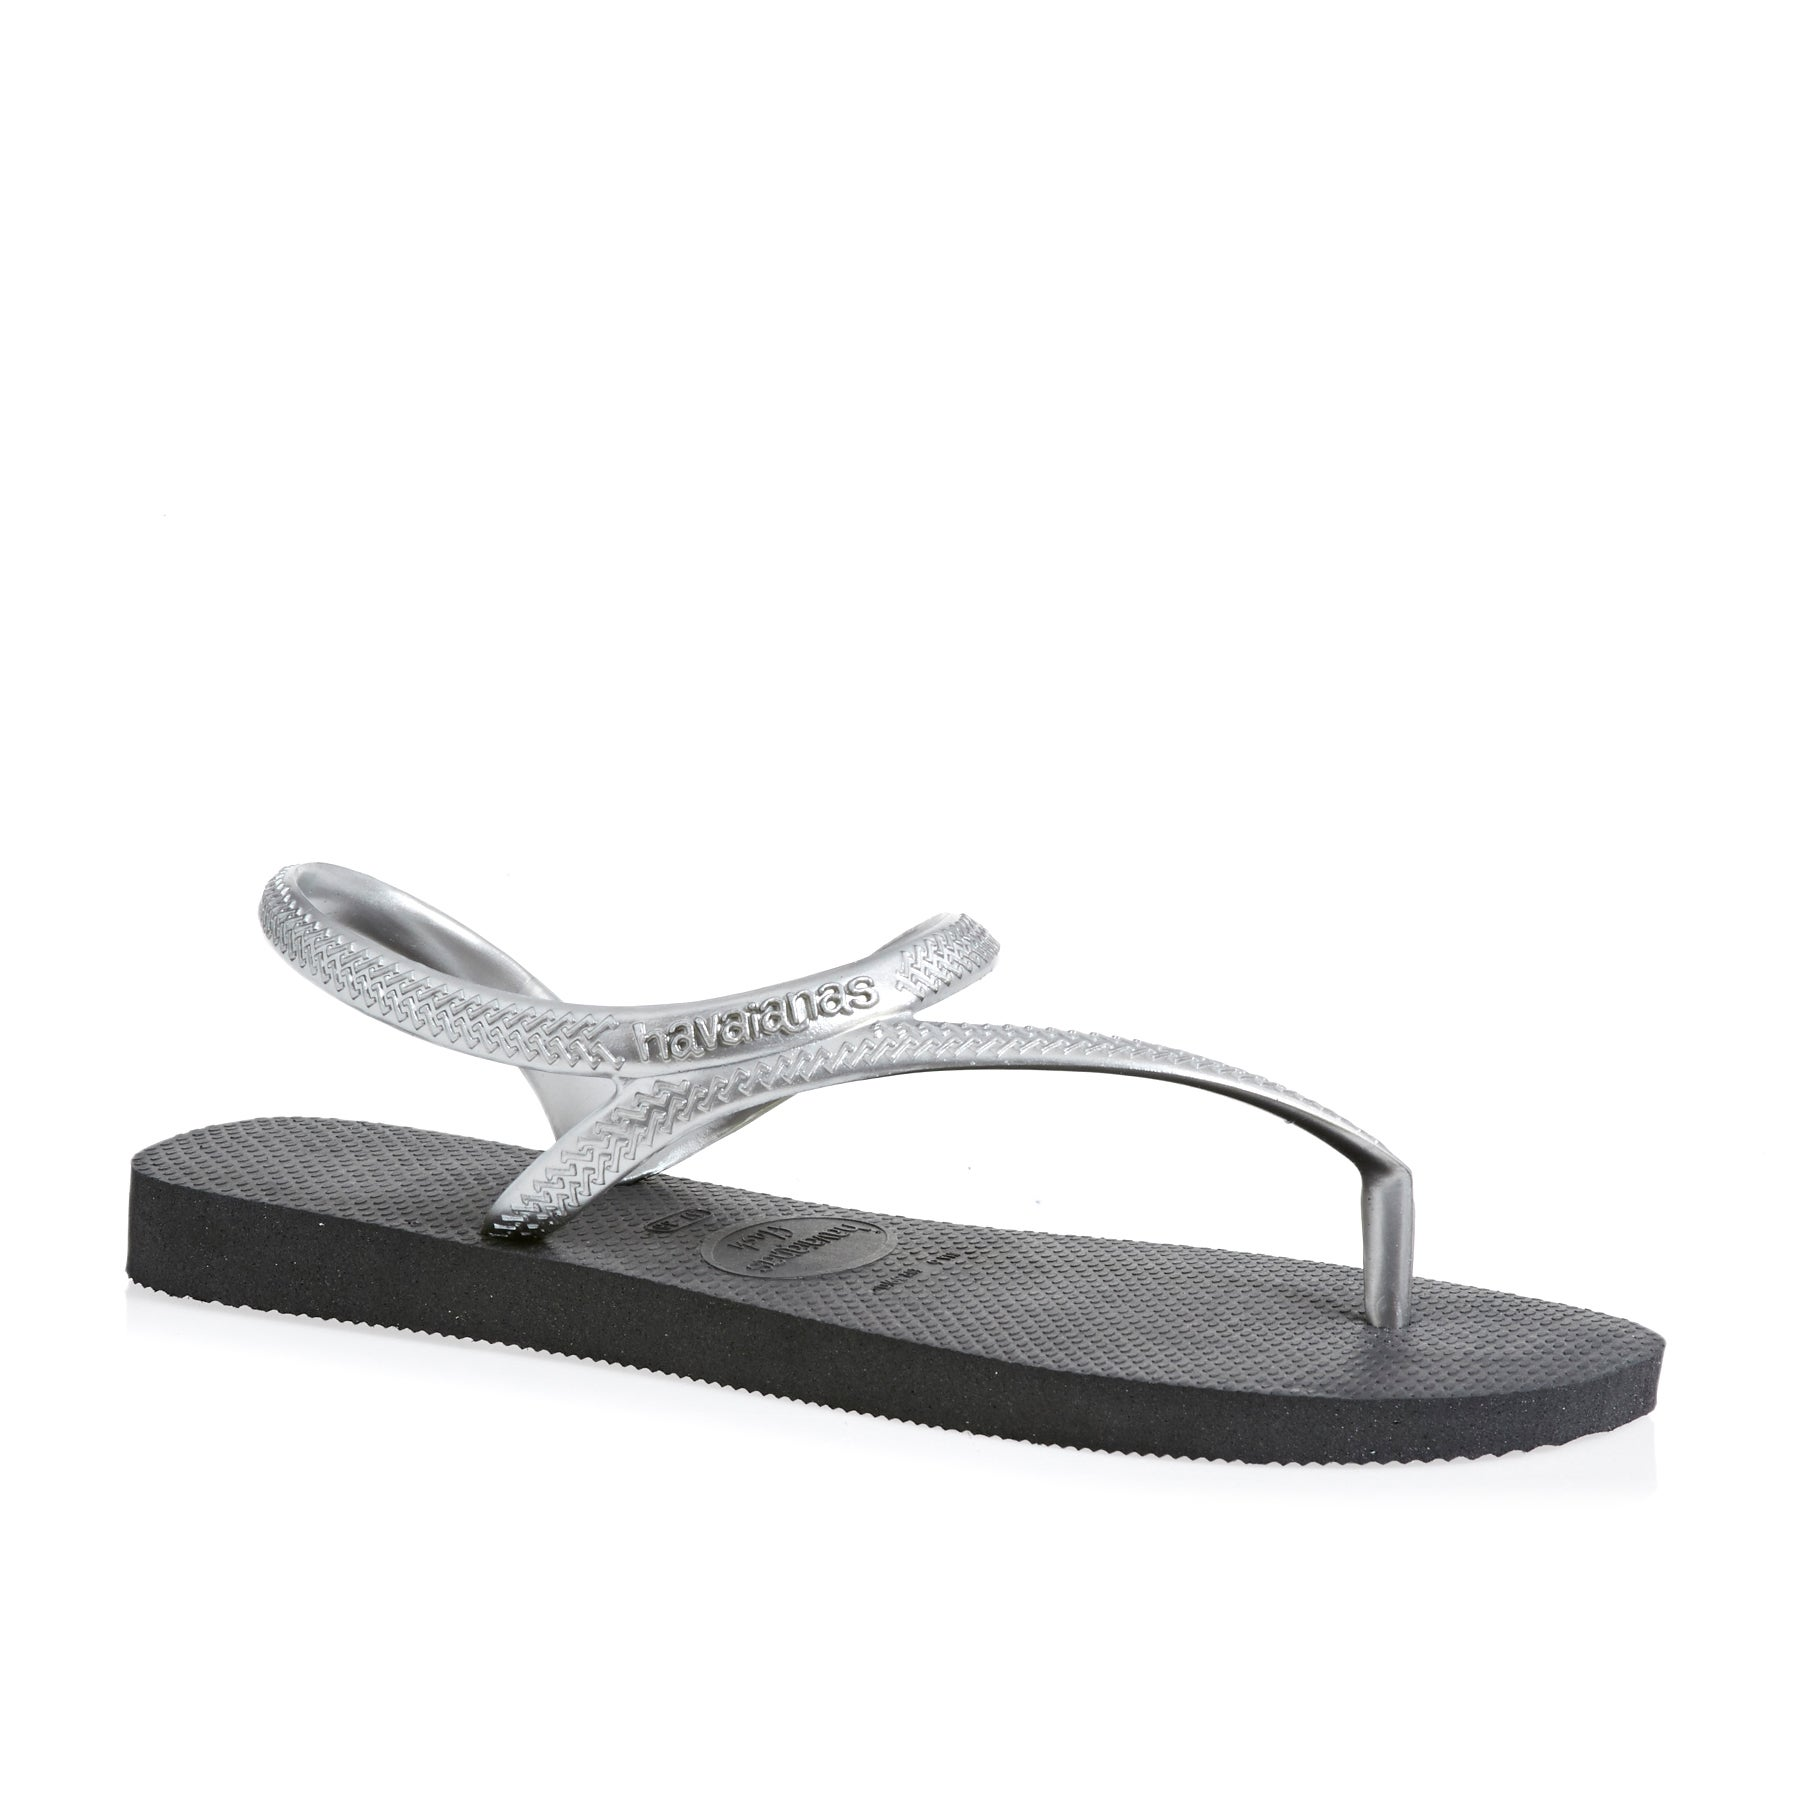 From Urban Available Surfdome Havaianas Sandals Flash Womens OXPkN08nw